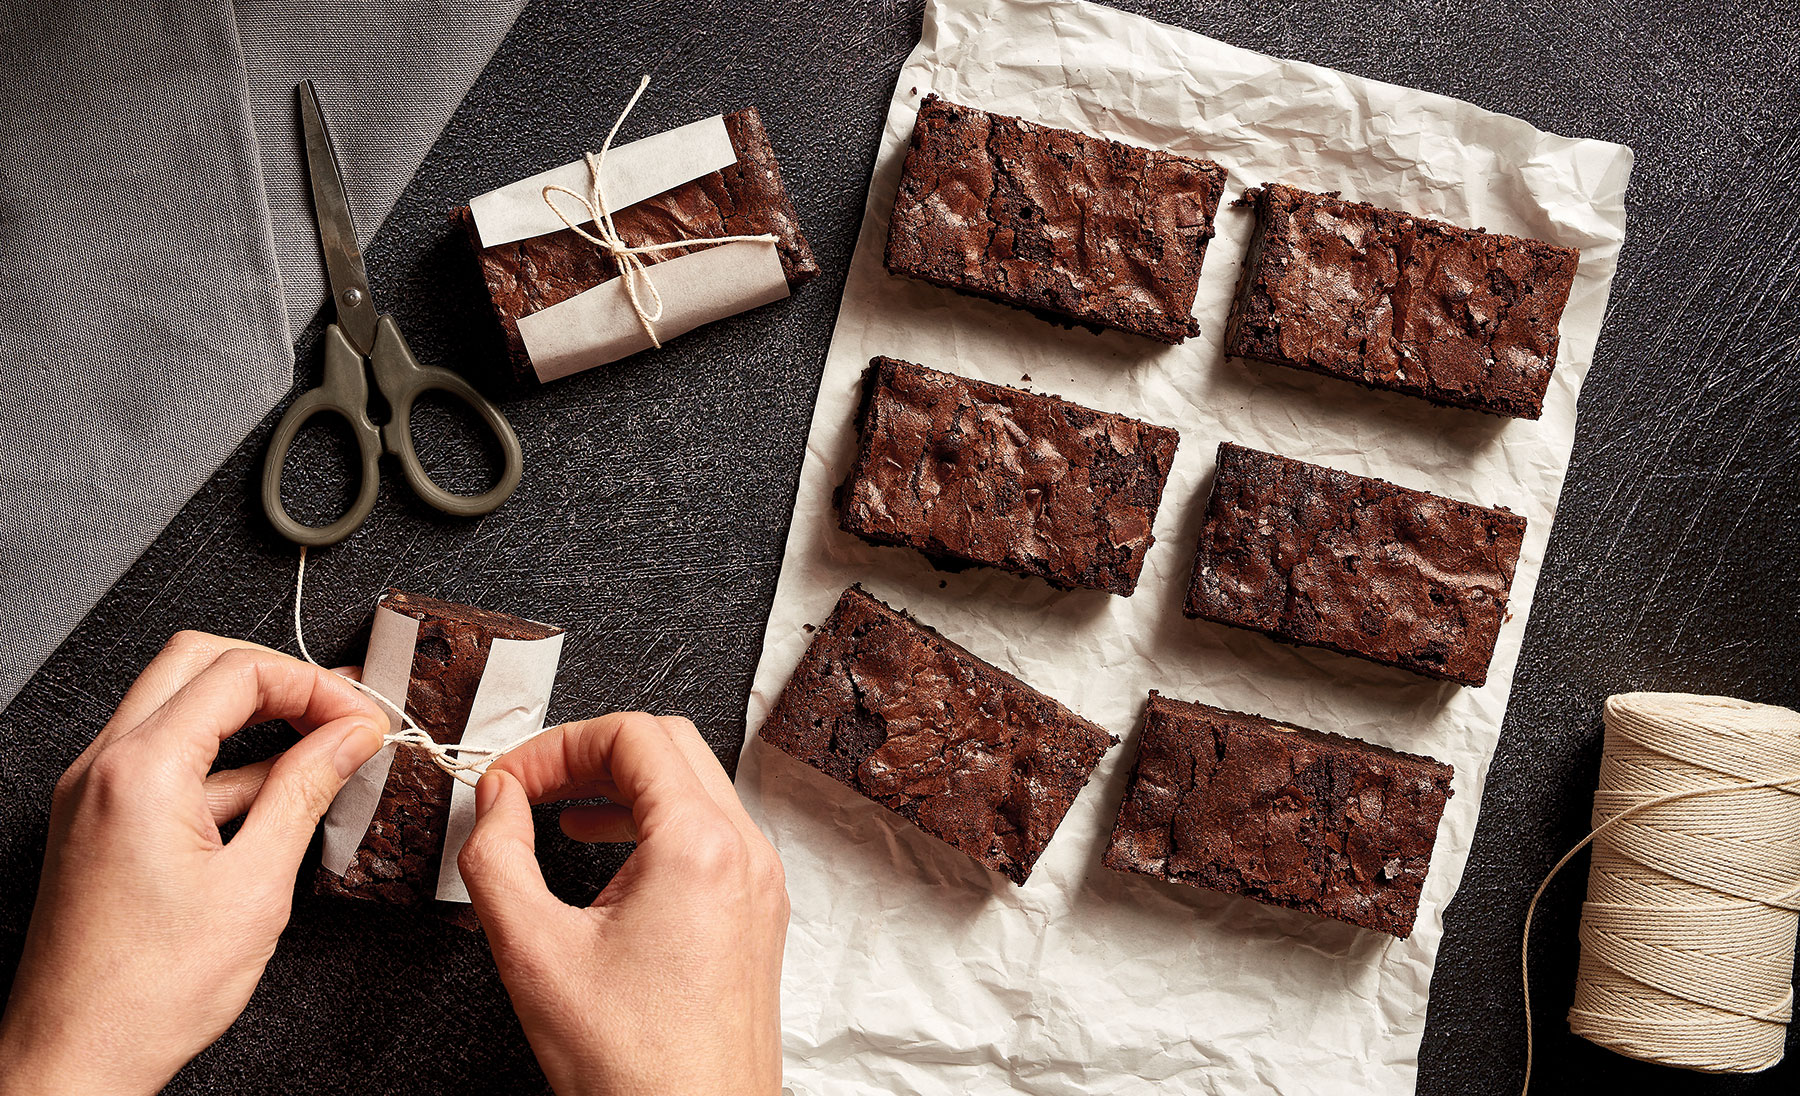 Essex Bakery brownies